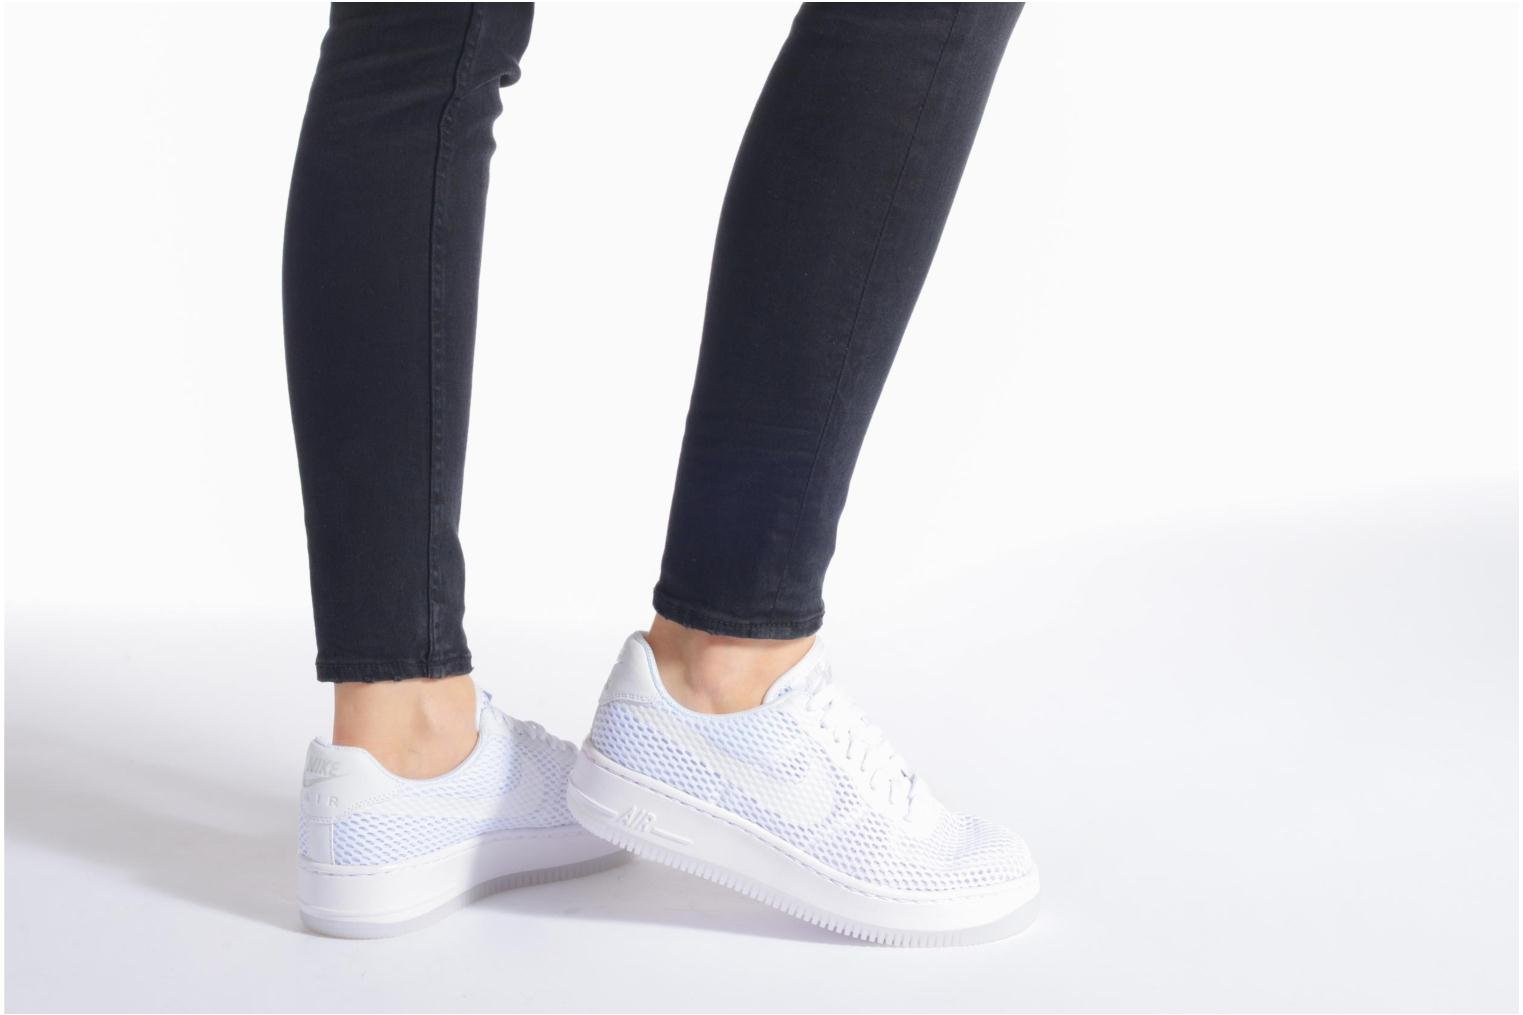 W Af1 Low Upstep Br White/white